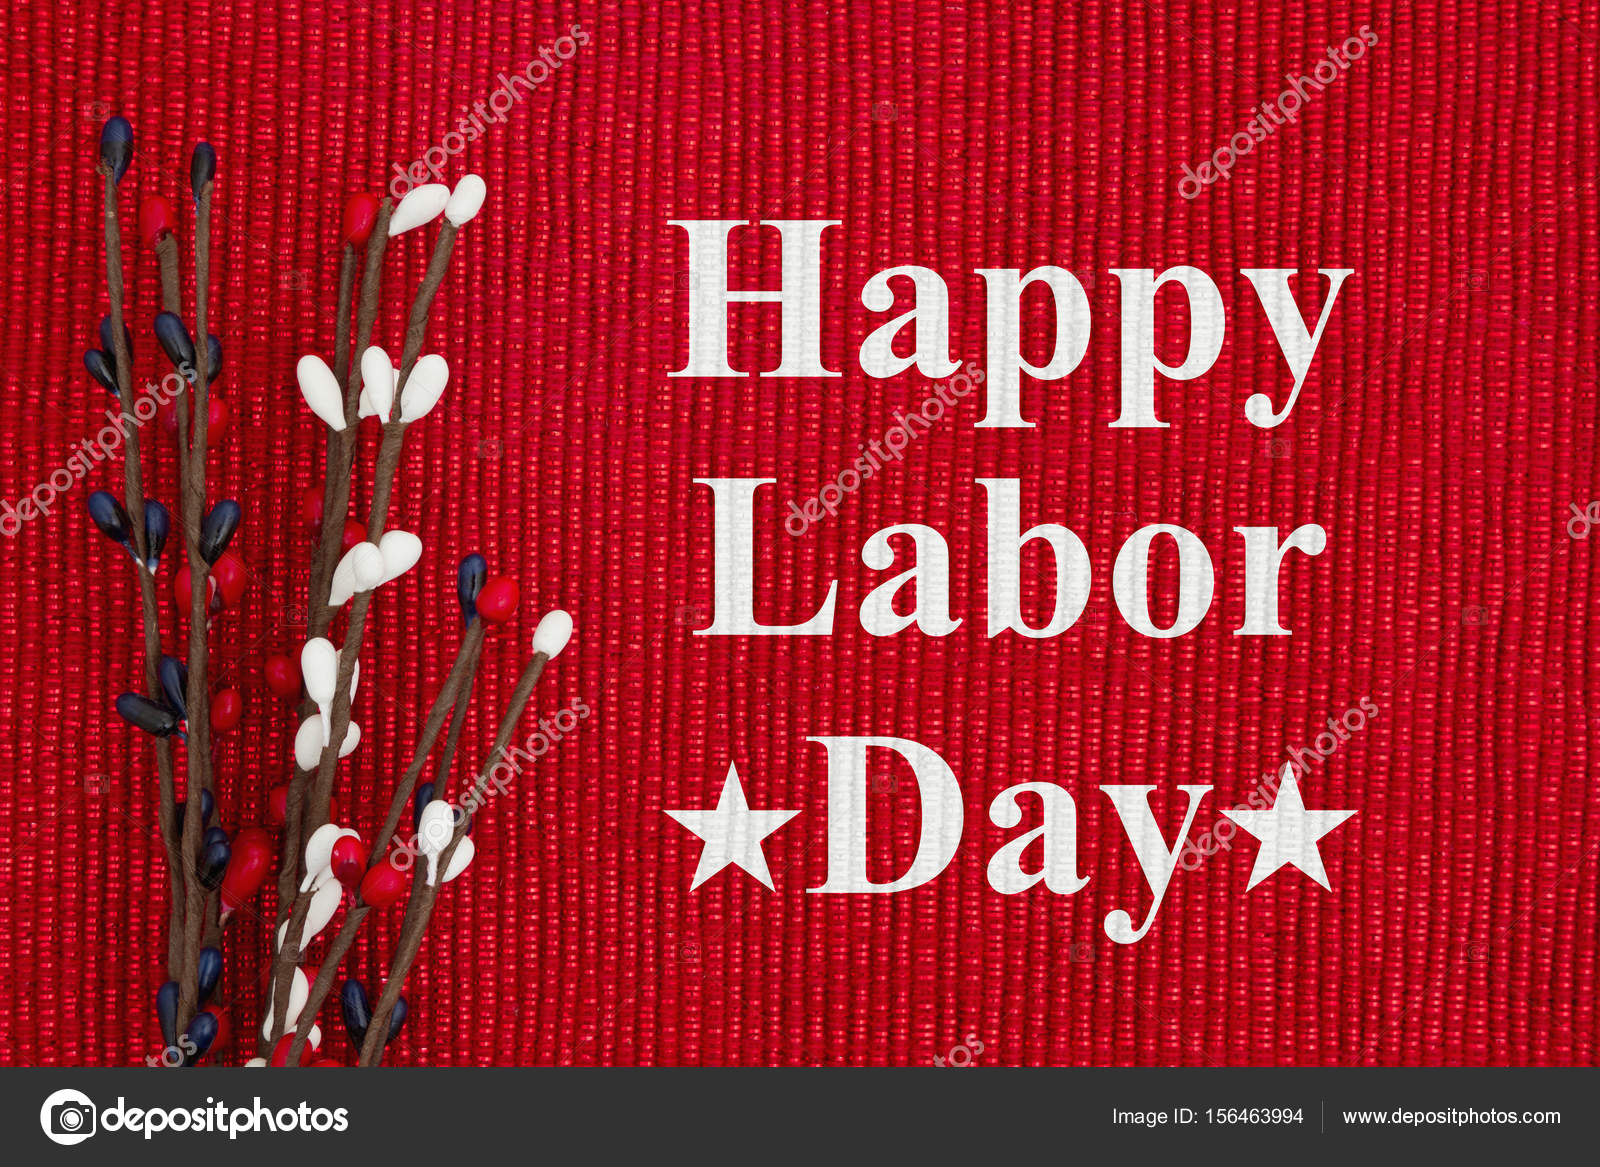 Happy labor day greeting stock photo karenr 156463994 happy labor day greeting stock photo kristyandbryce Image collections